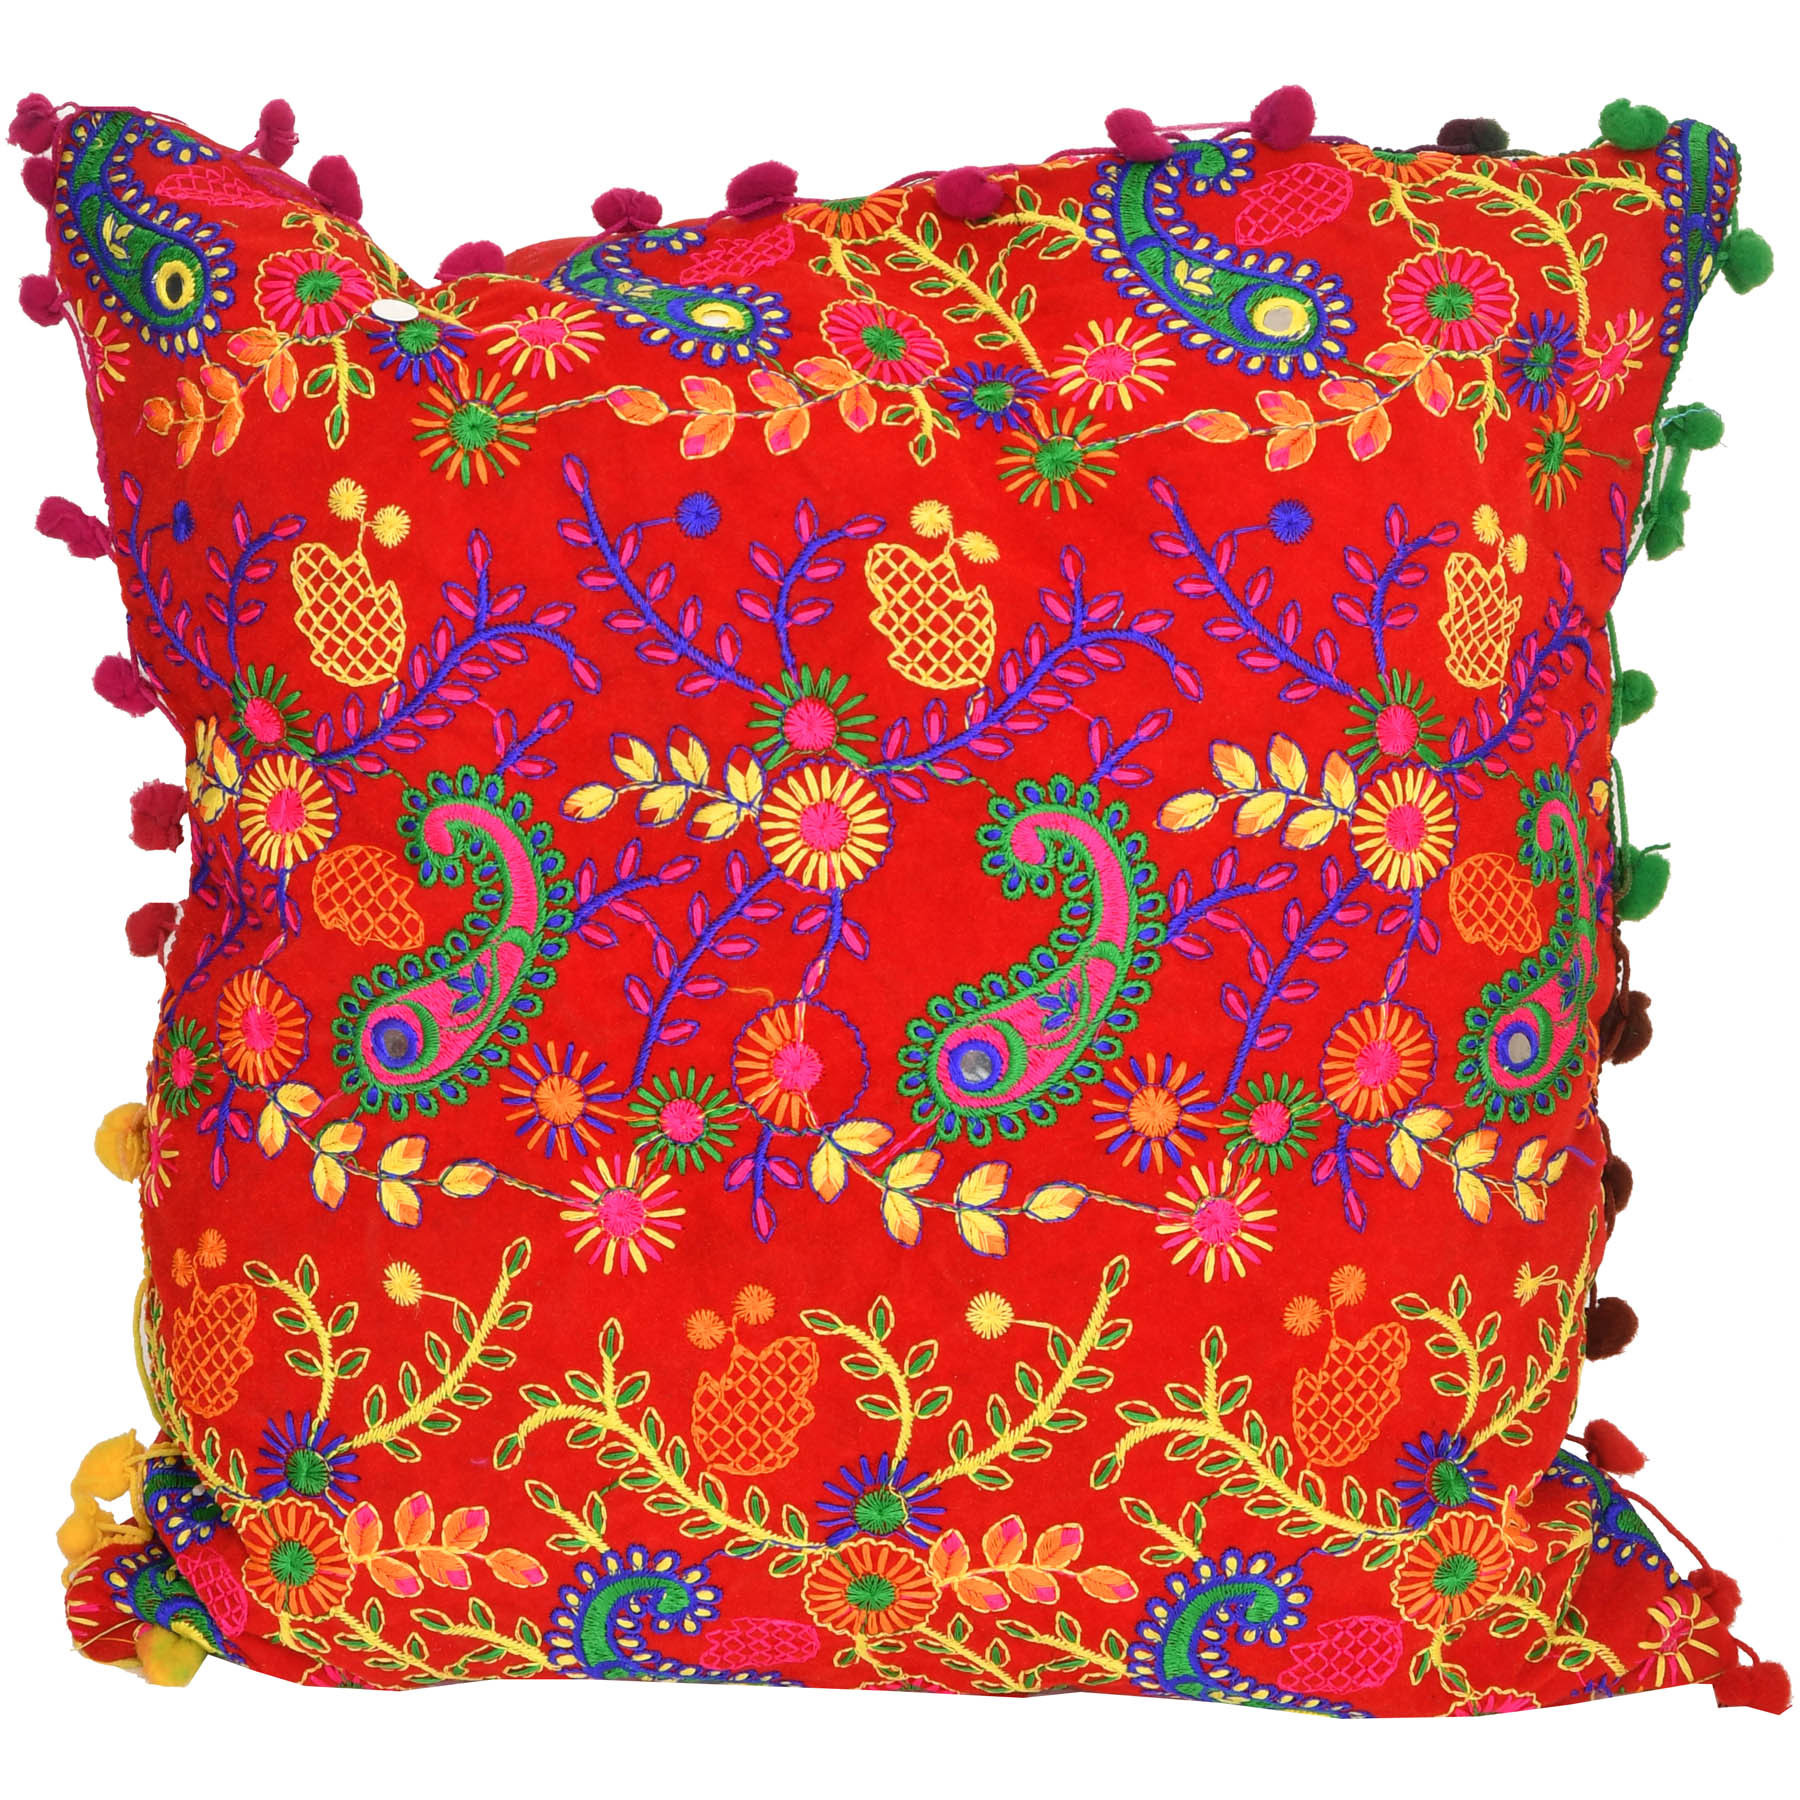 Chinese-Red Cushion Cover with Embroidered Paisleys and Mirrors